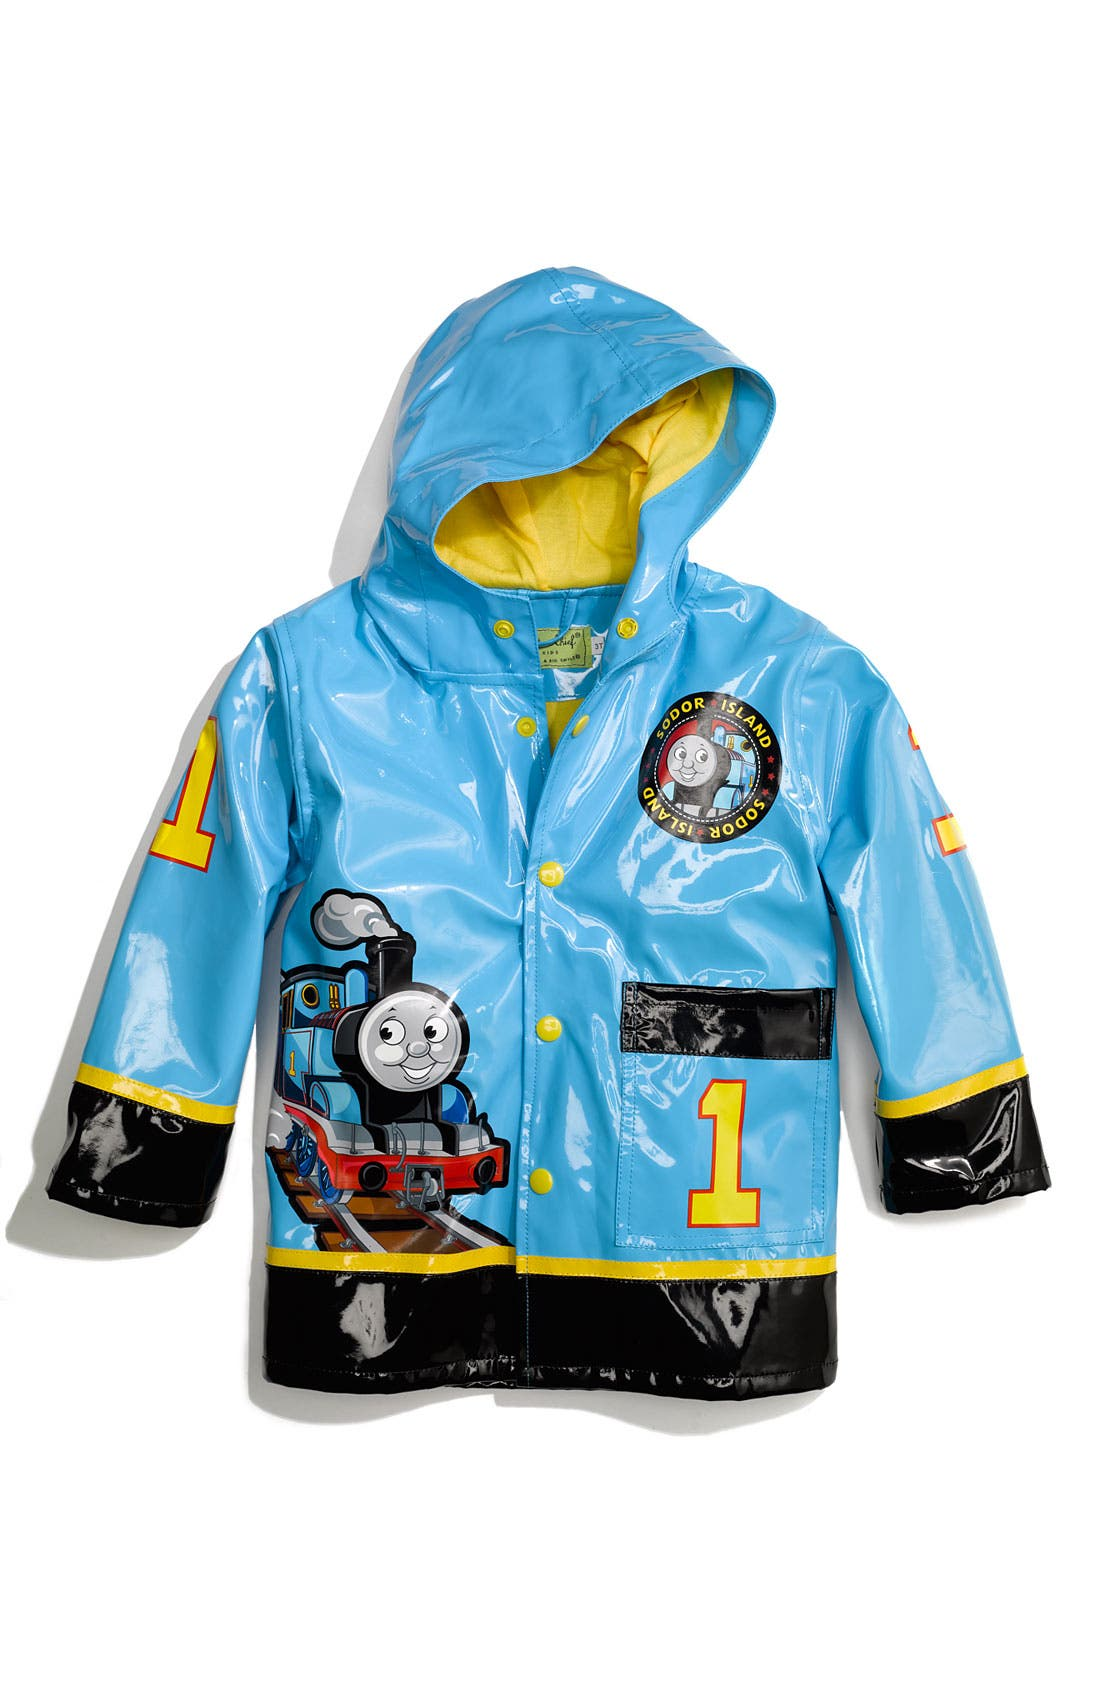 Alternate Image 1 Selected - Western Chief 'Thomas the Tank Engine®' Raincoat (Toddler Boys & Little Boys)